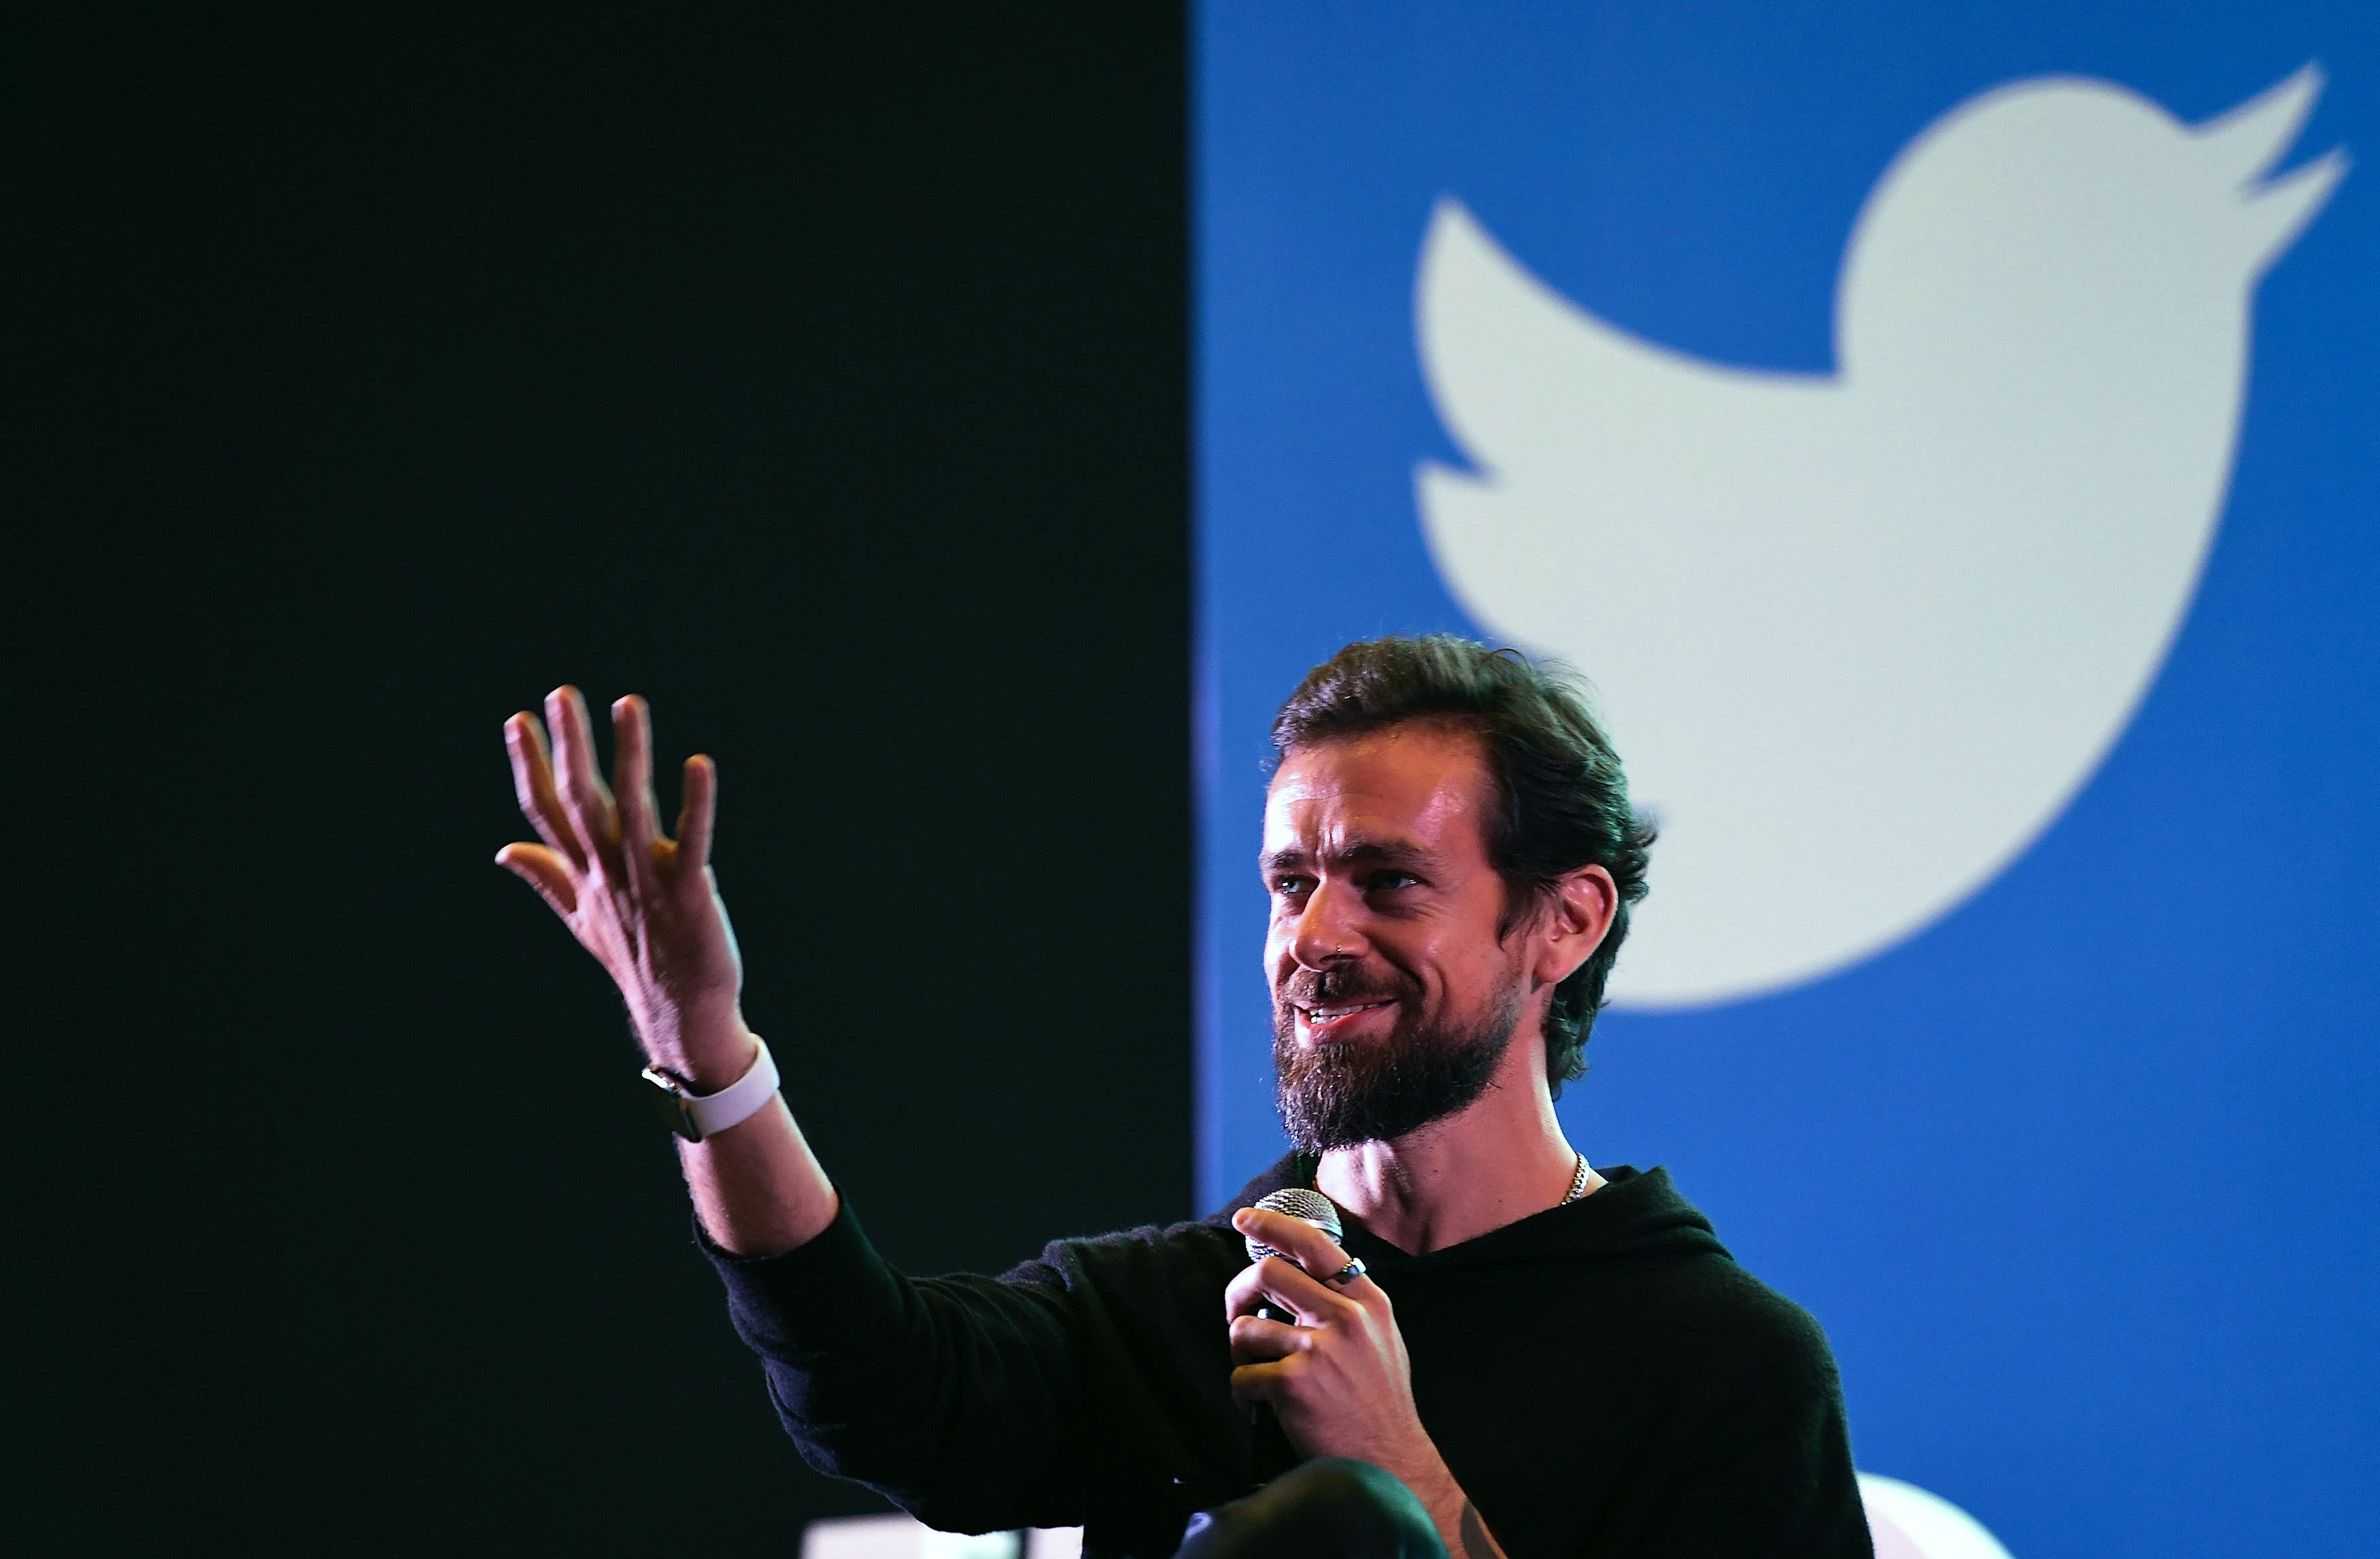 Twitter will no longer take political ads: Jack Dorsey tweets